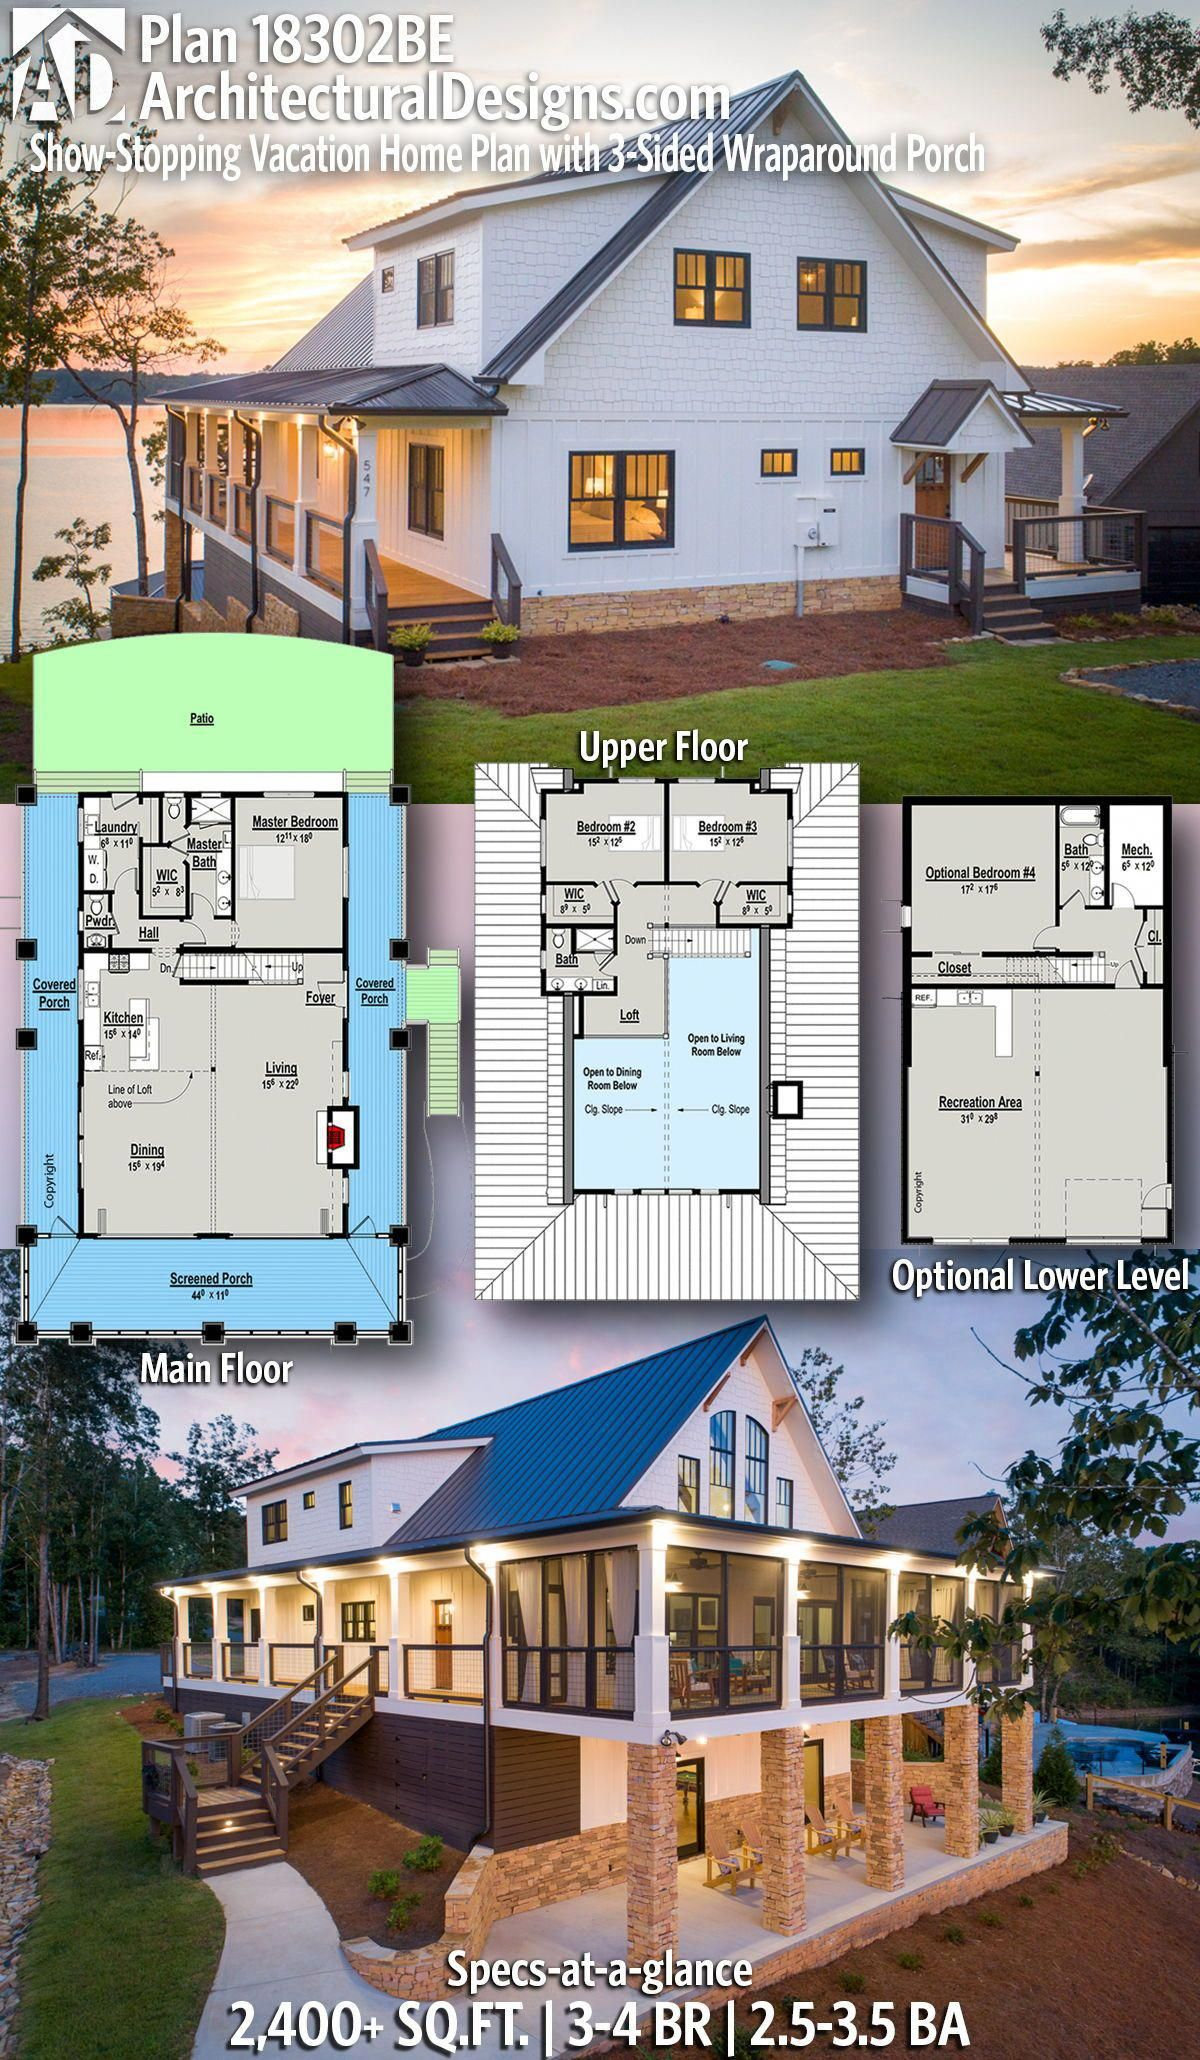 Coastal Home Plan 18302be W 3 Sided Wrap Around Porch 2 450 Square Feet Living 3 4 Bedrooms 2 5 3 5 In 2020 Barn House Plans Lake House Plans House Plans